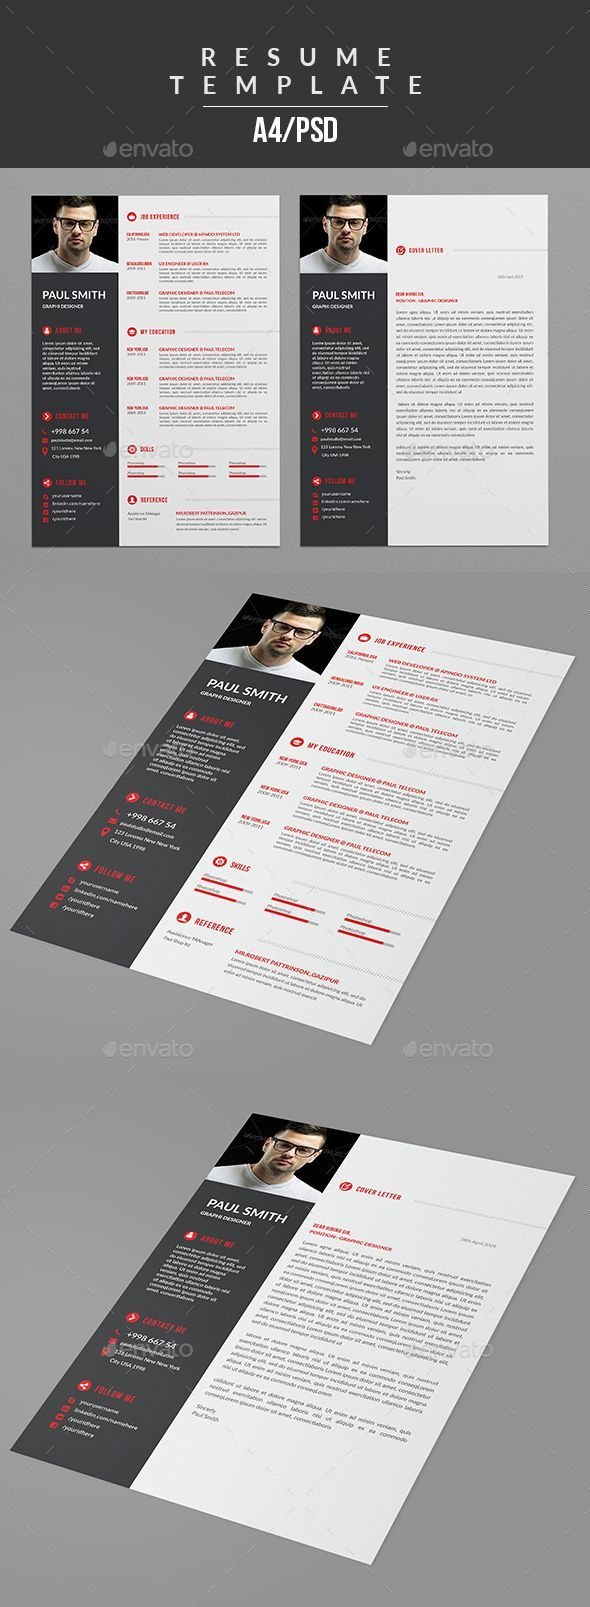 noc letter format%0A  Resume  Resumes Stationery Download here  https   graphicriver net